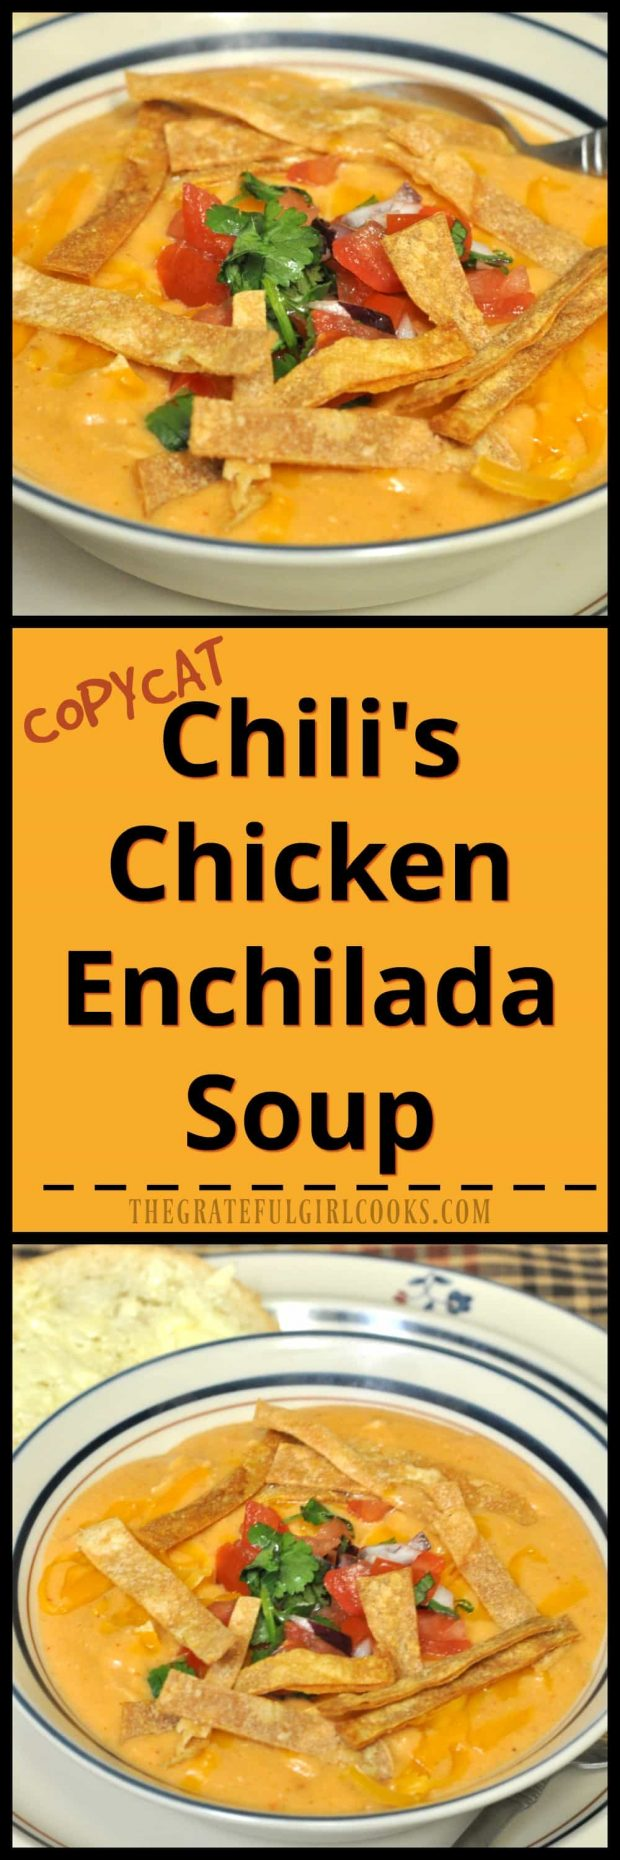 Chili's Chicken Enchilada Soup (copycat) / The Grateful Girl Cooks! Enjoy a taste of the Southwest with this delicious soup!